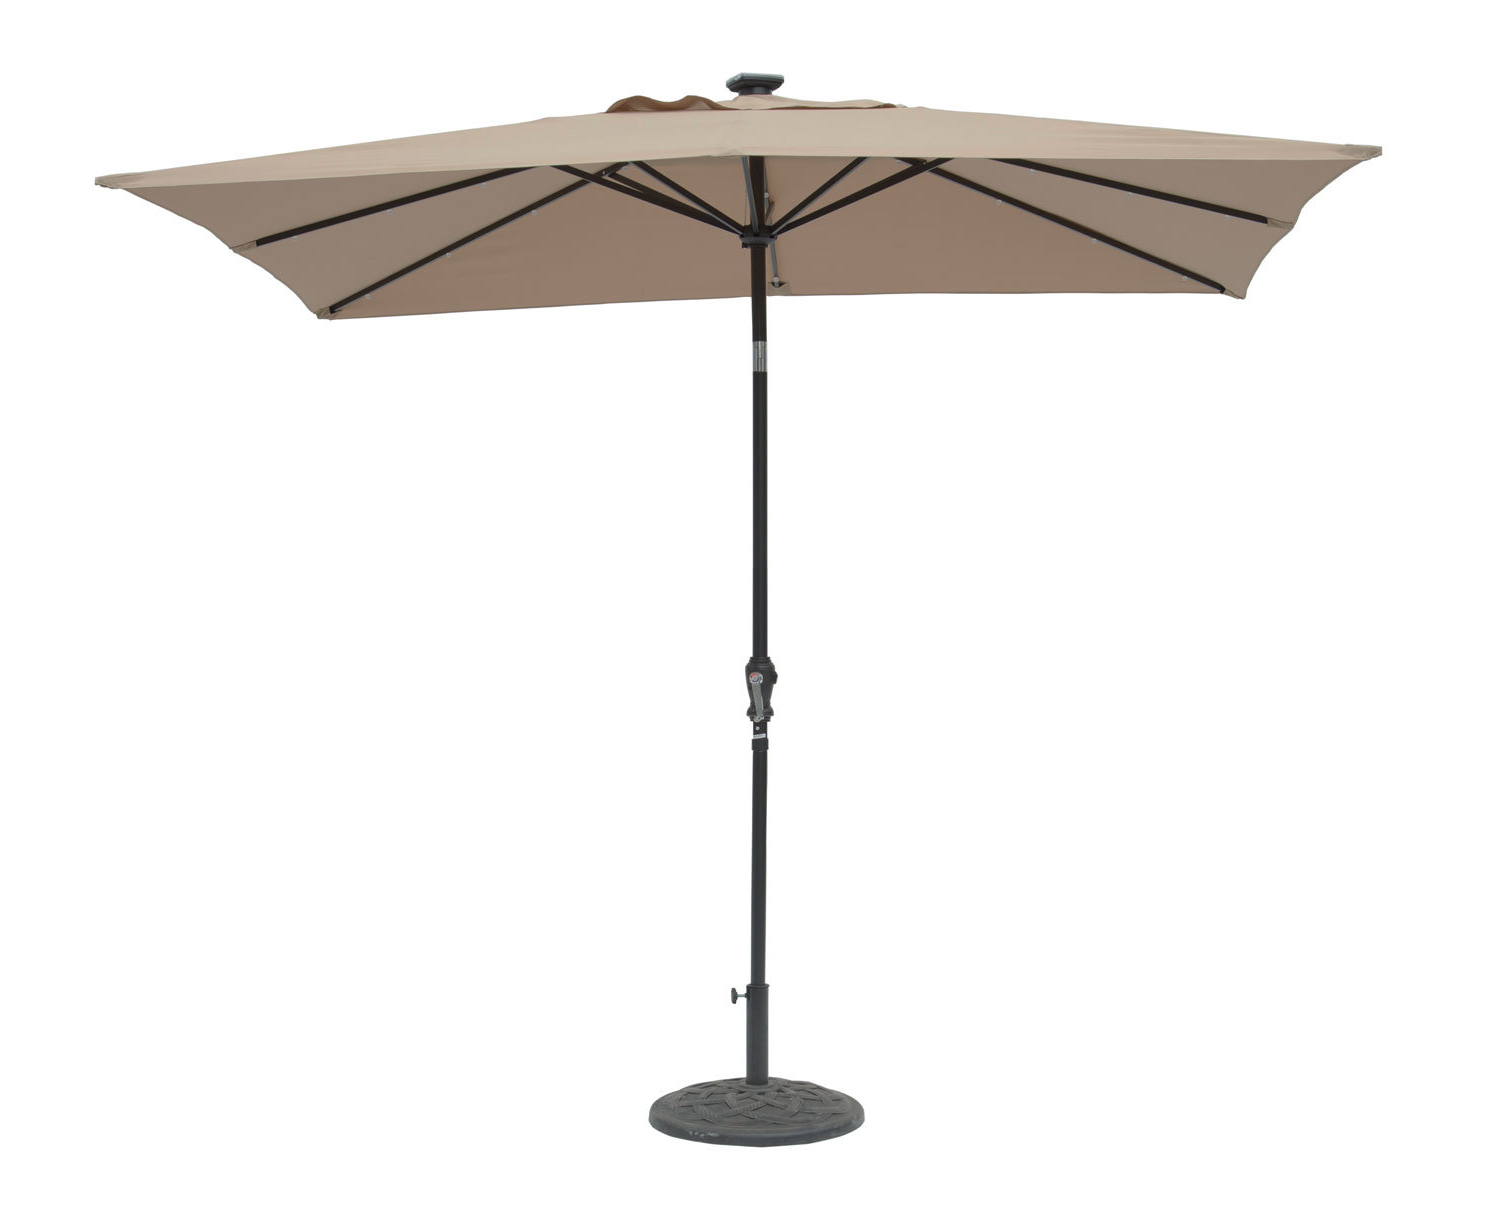 Kamila 9' X 7' Rectangular Lighted Umbrella With Most Recent Cordelia Rectangular Market Umbrellas (Gallery 9 of 20)